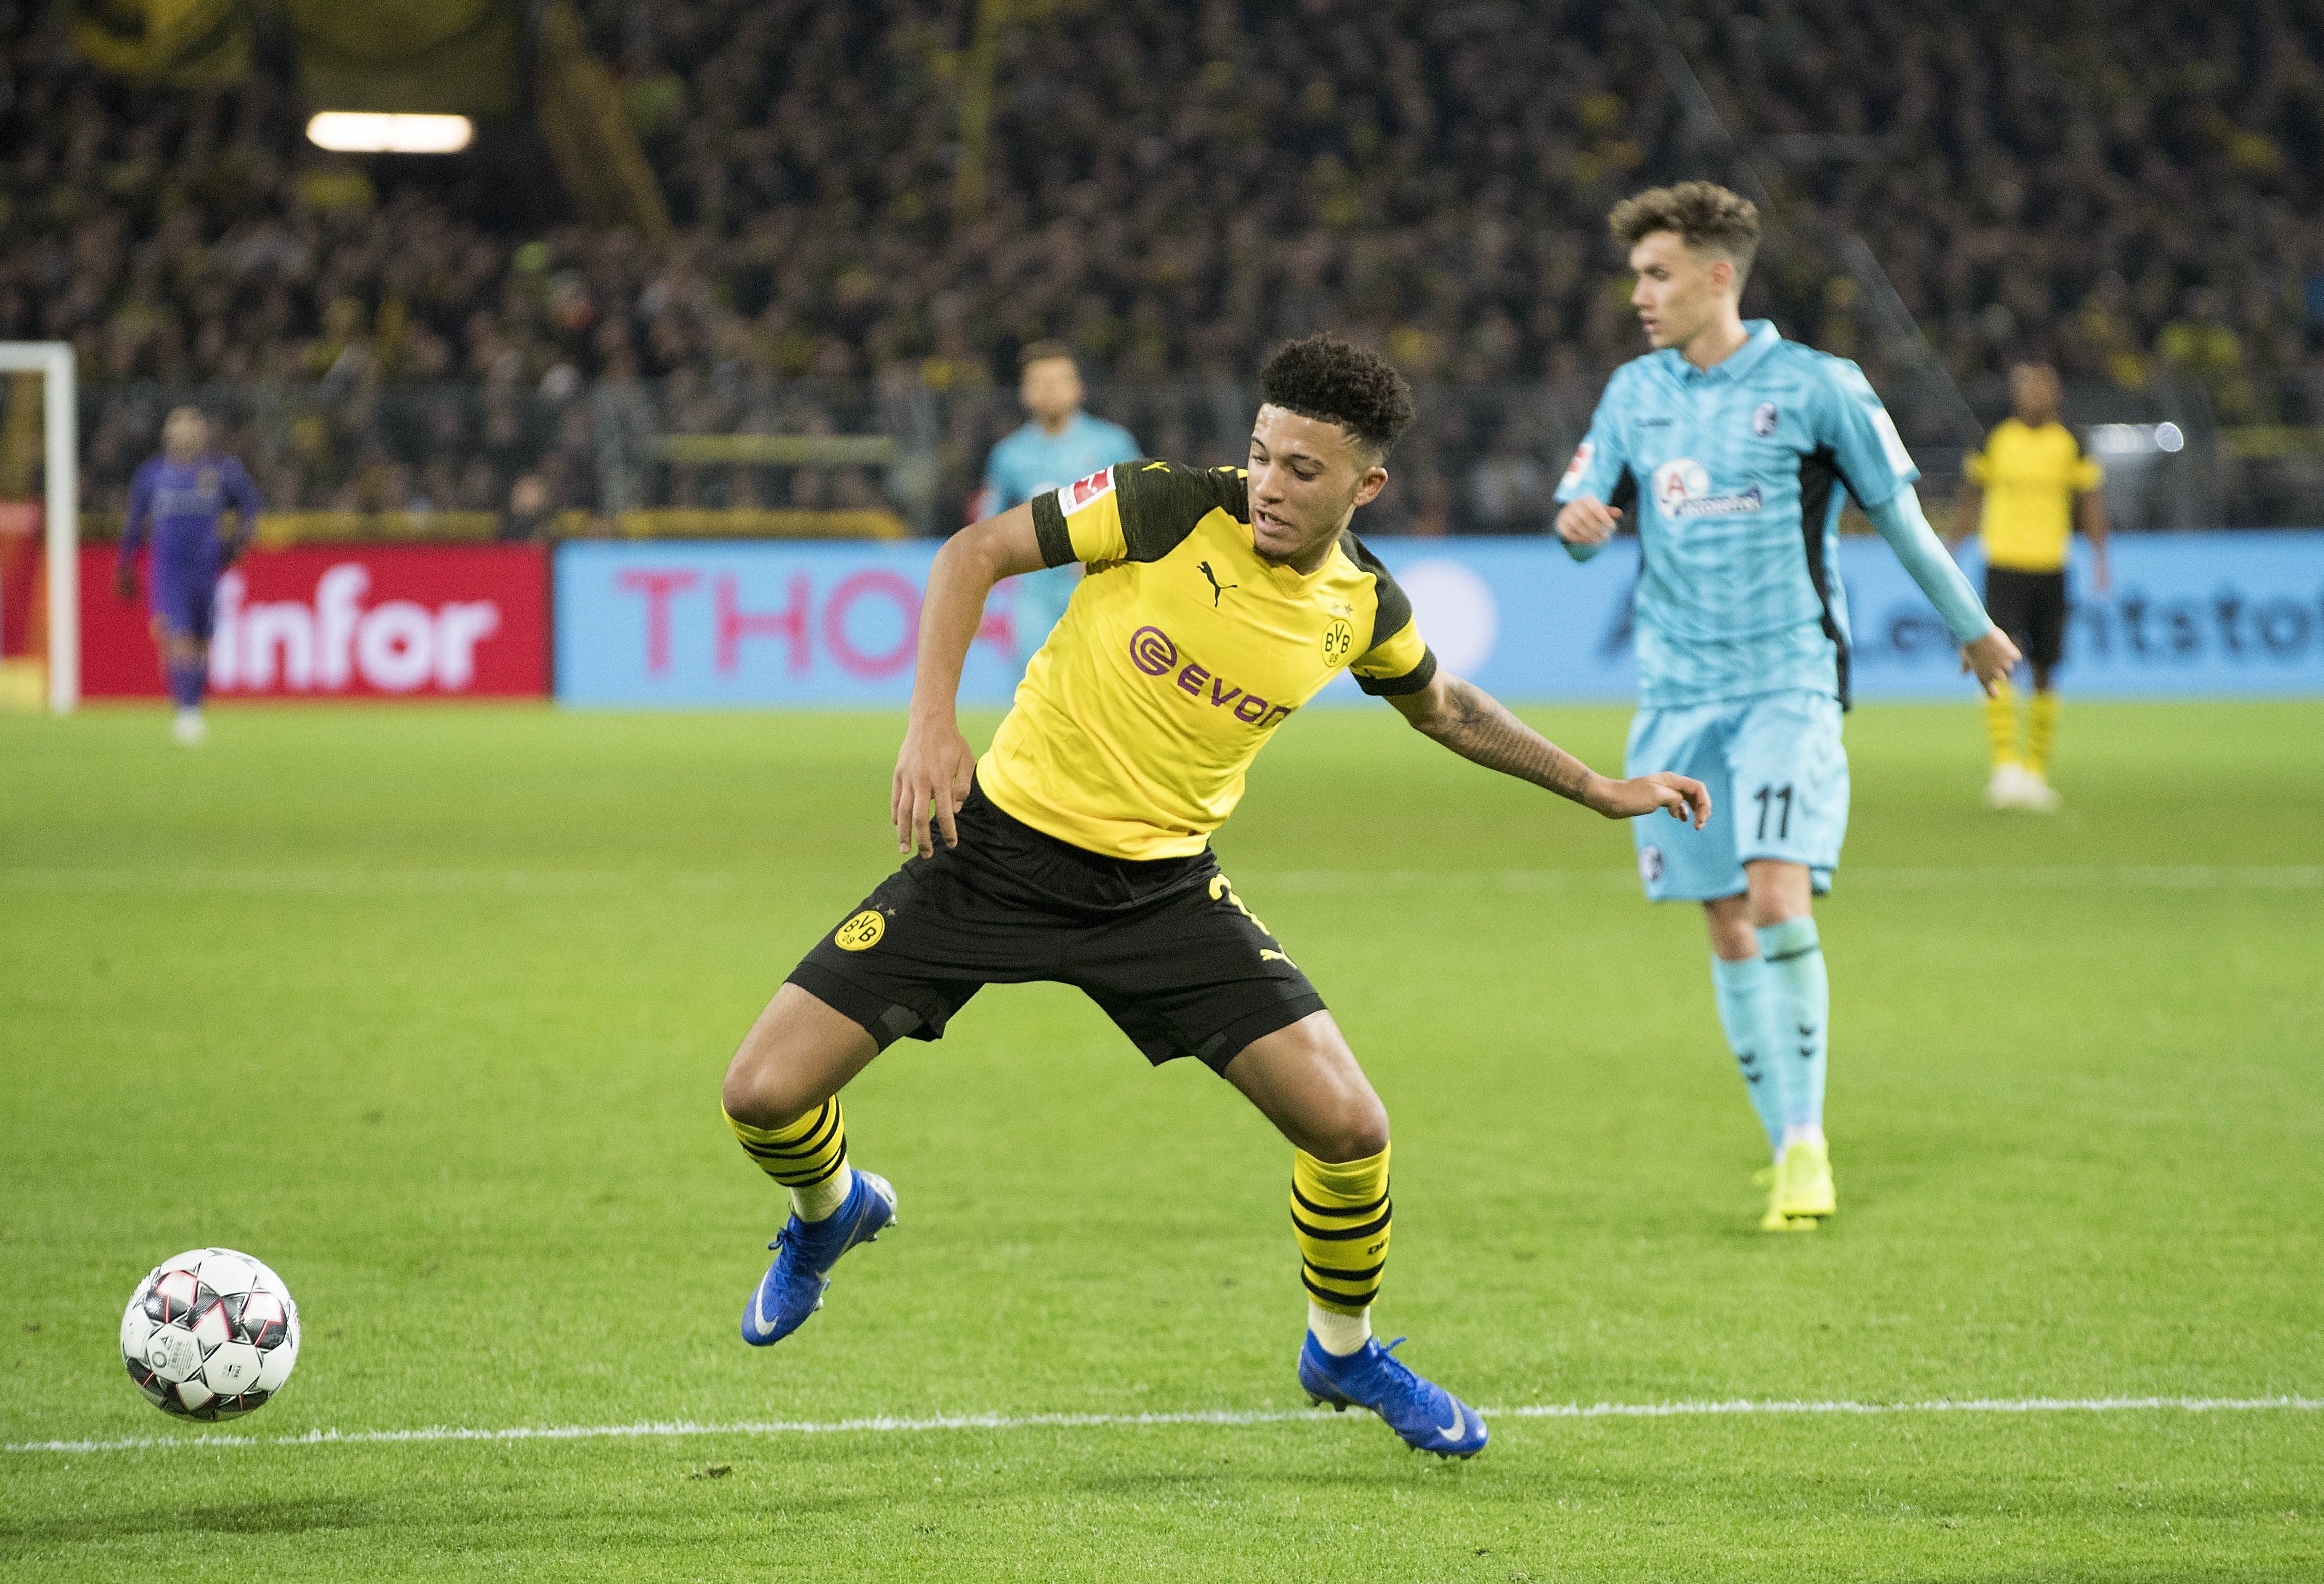 Club of the Month: Borussia Dortmund – back in contention